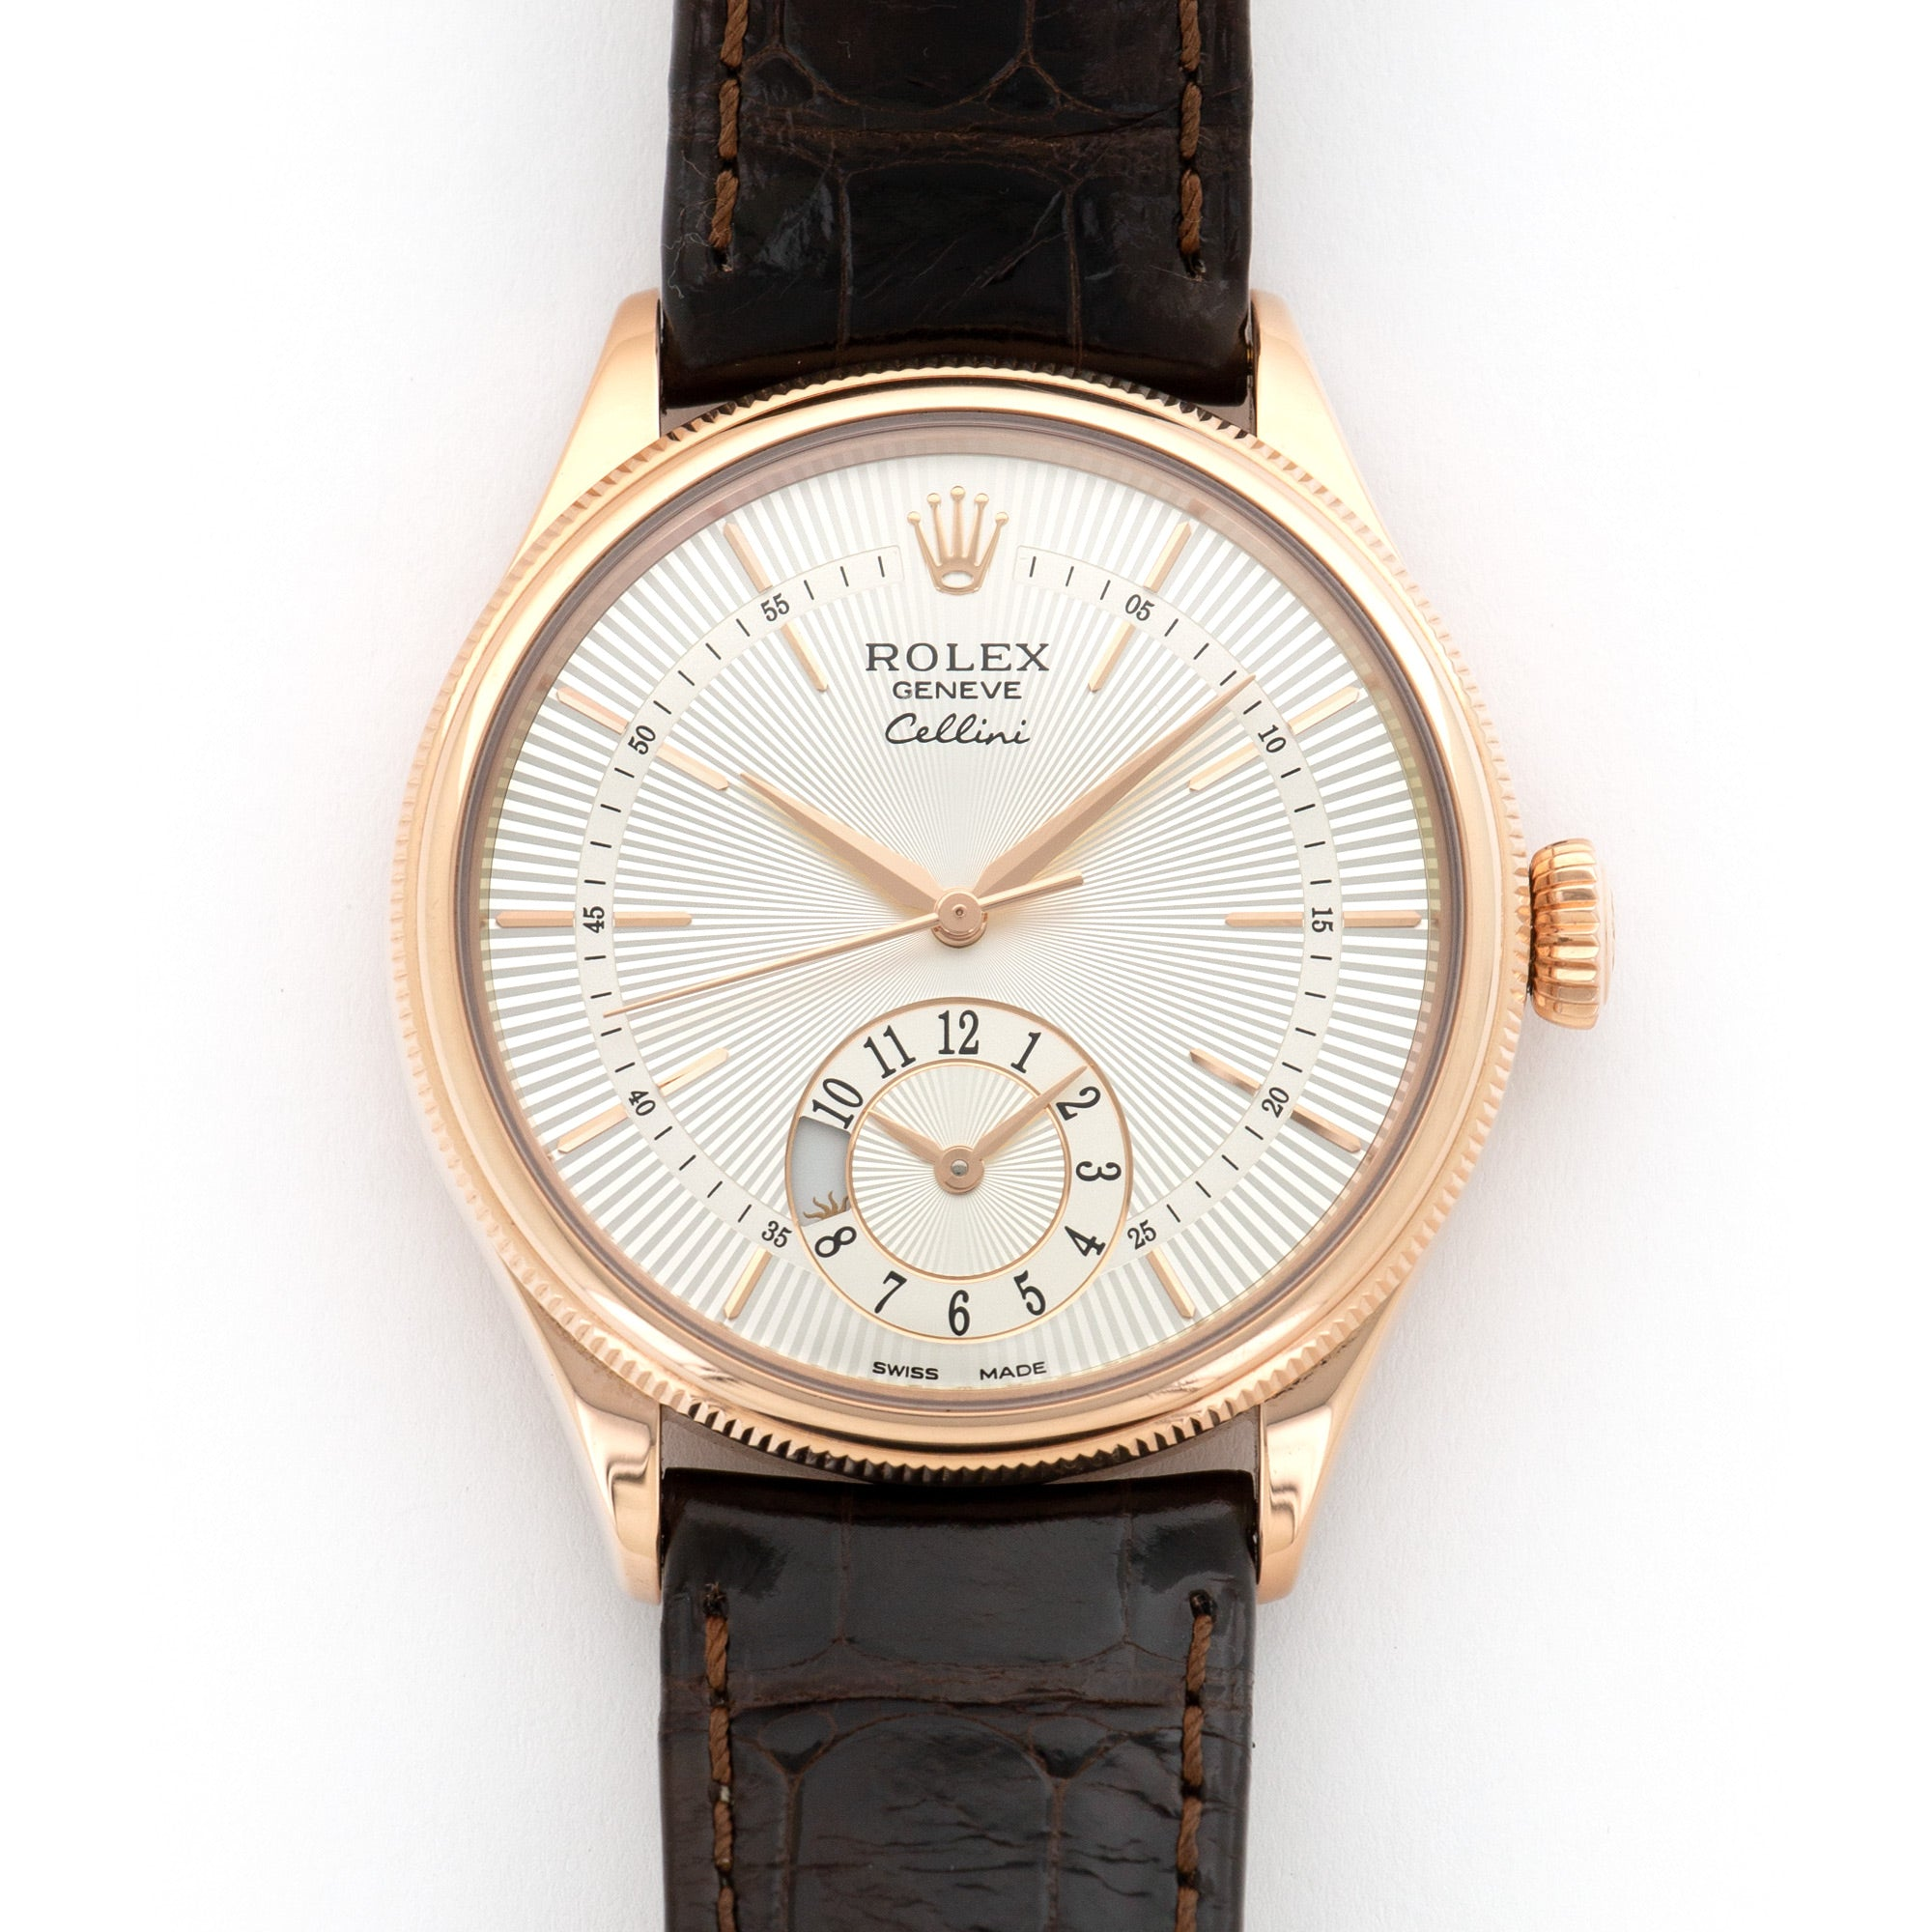 Rolex Cellini 50525 18k RG  Likely Never Polished, Original Finish Unisex 18k RG Silver 39mm Automatic Current Brown Crocodile Original Box